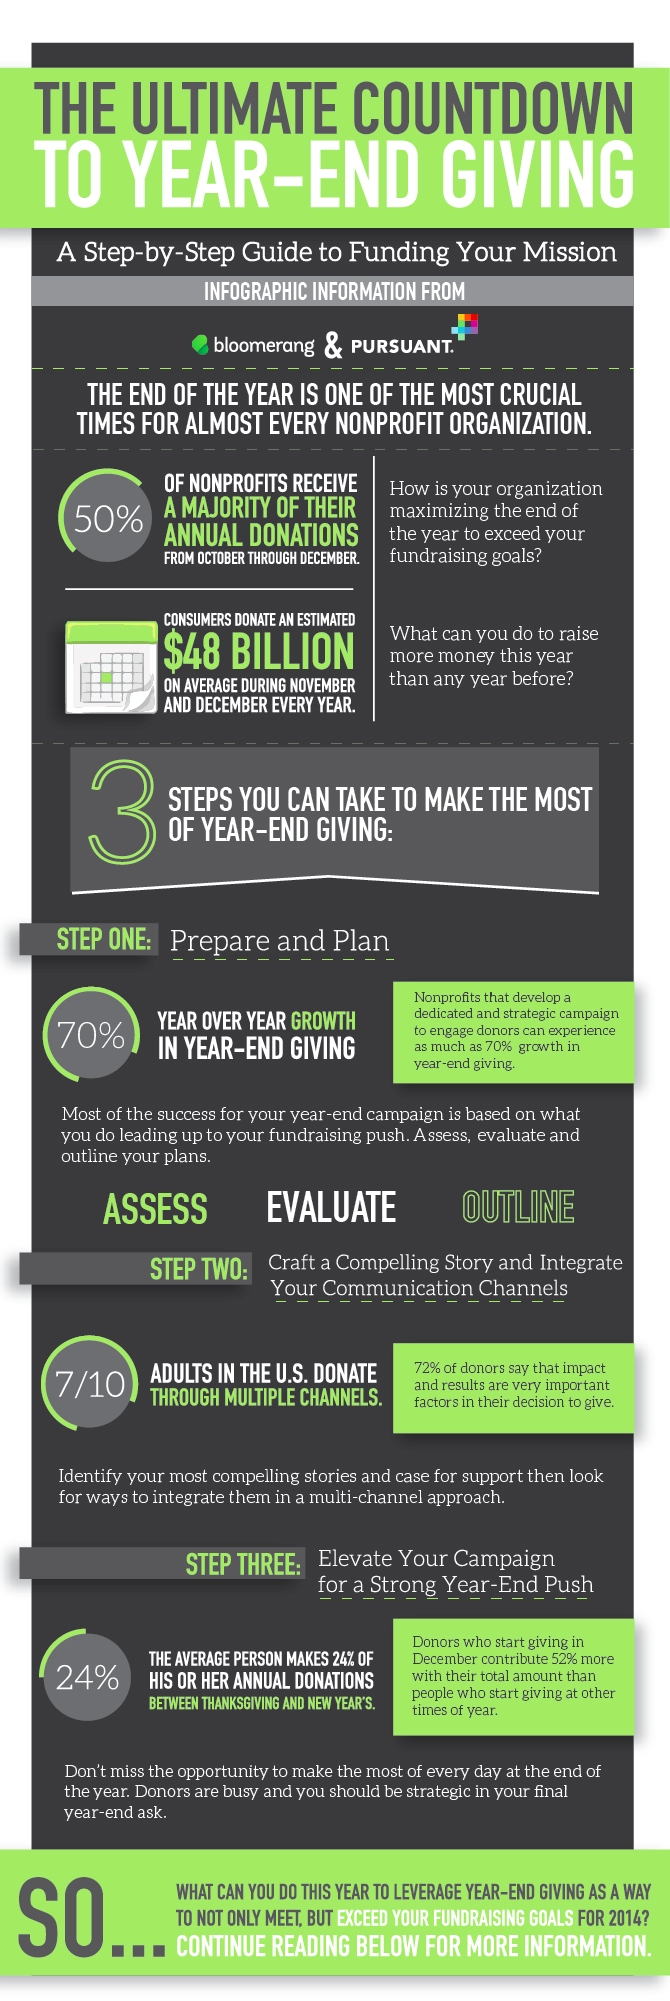 Infographic] A Step-By-Step Guide To Year-End Giving